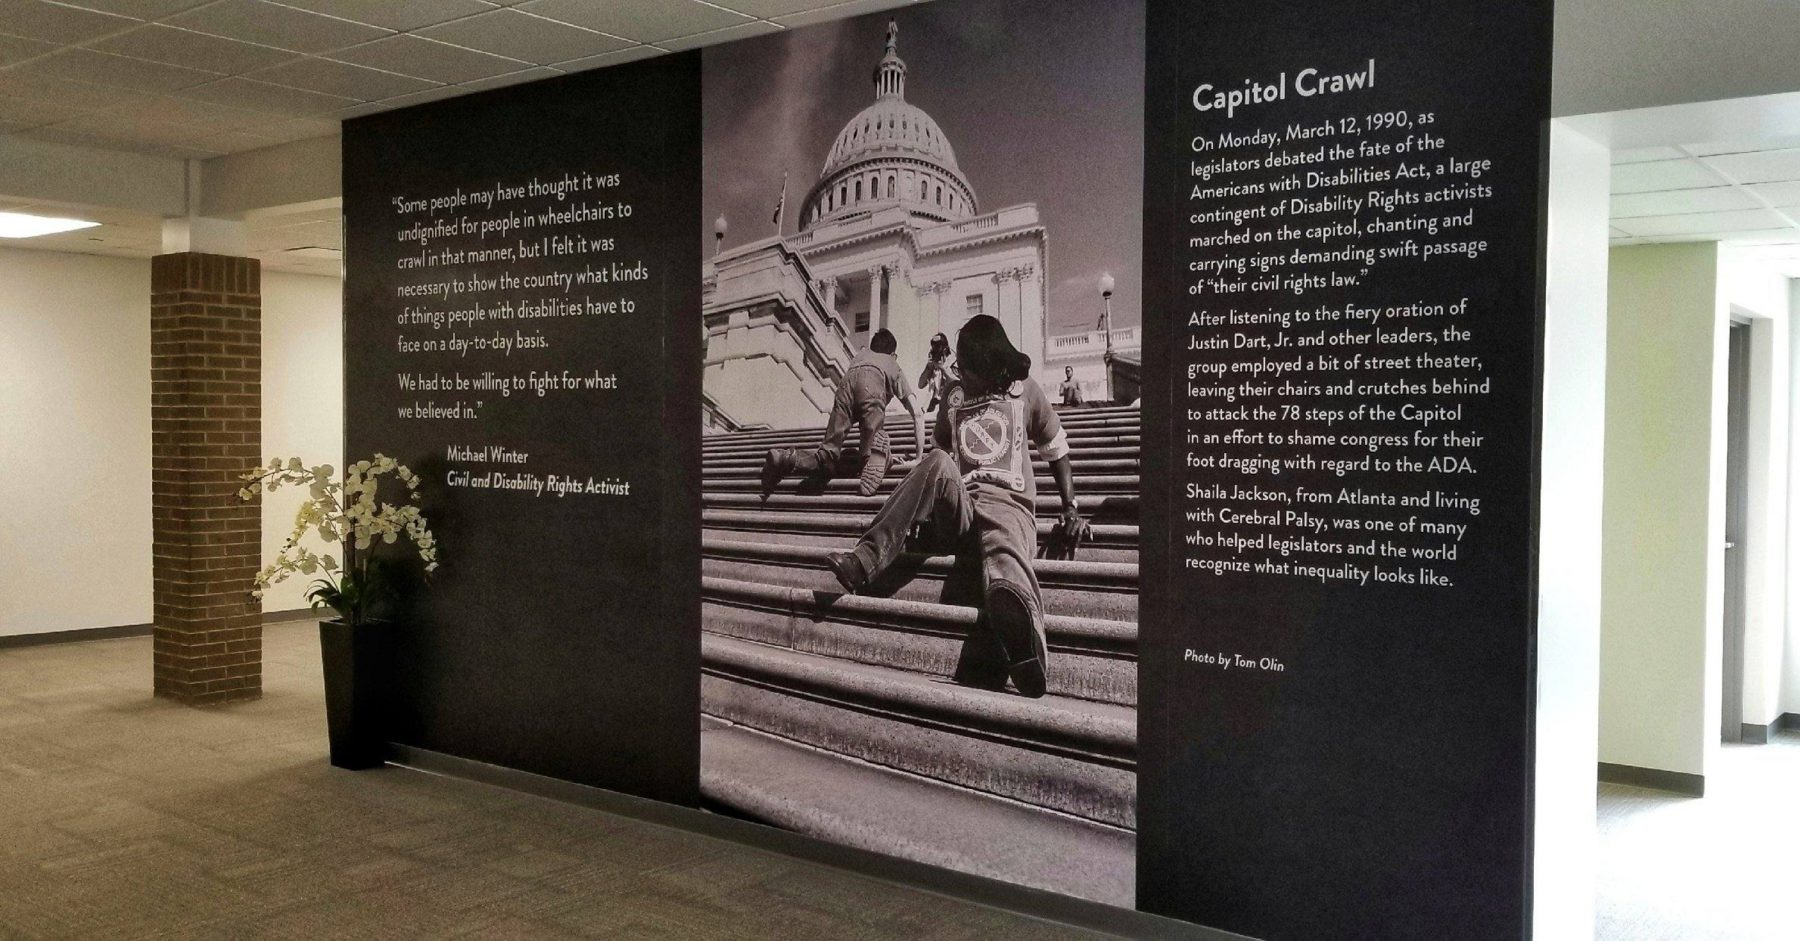 Interior hallway with Tom Olin's work - a large black and white photo of people crawling up the steps of the U.S. Capitol building in Washington, DC